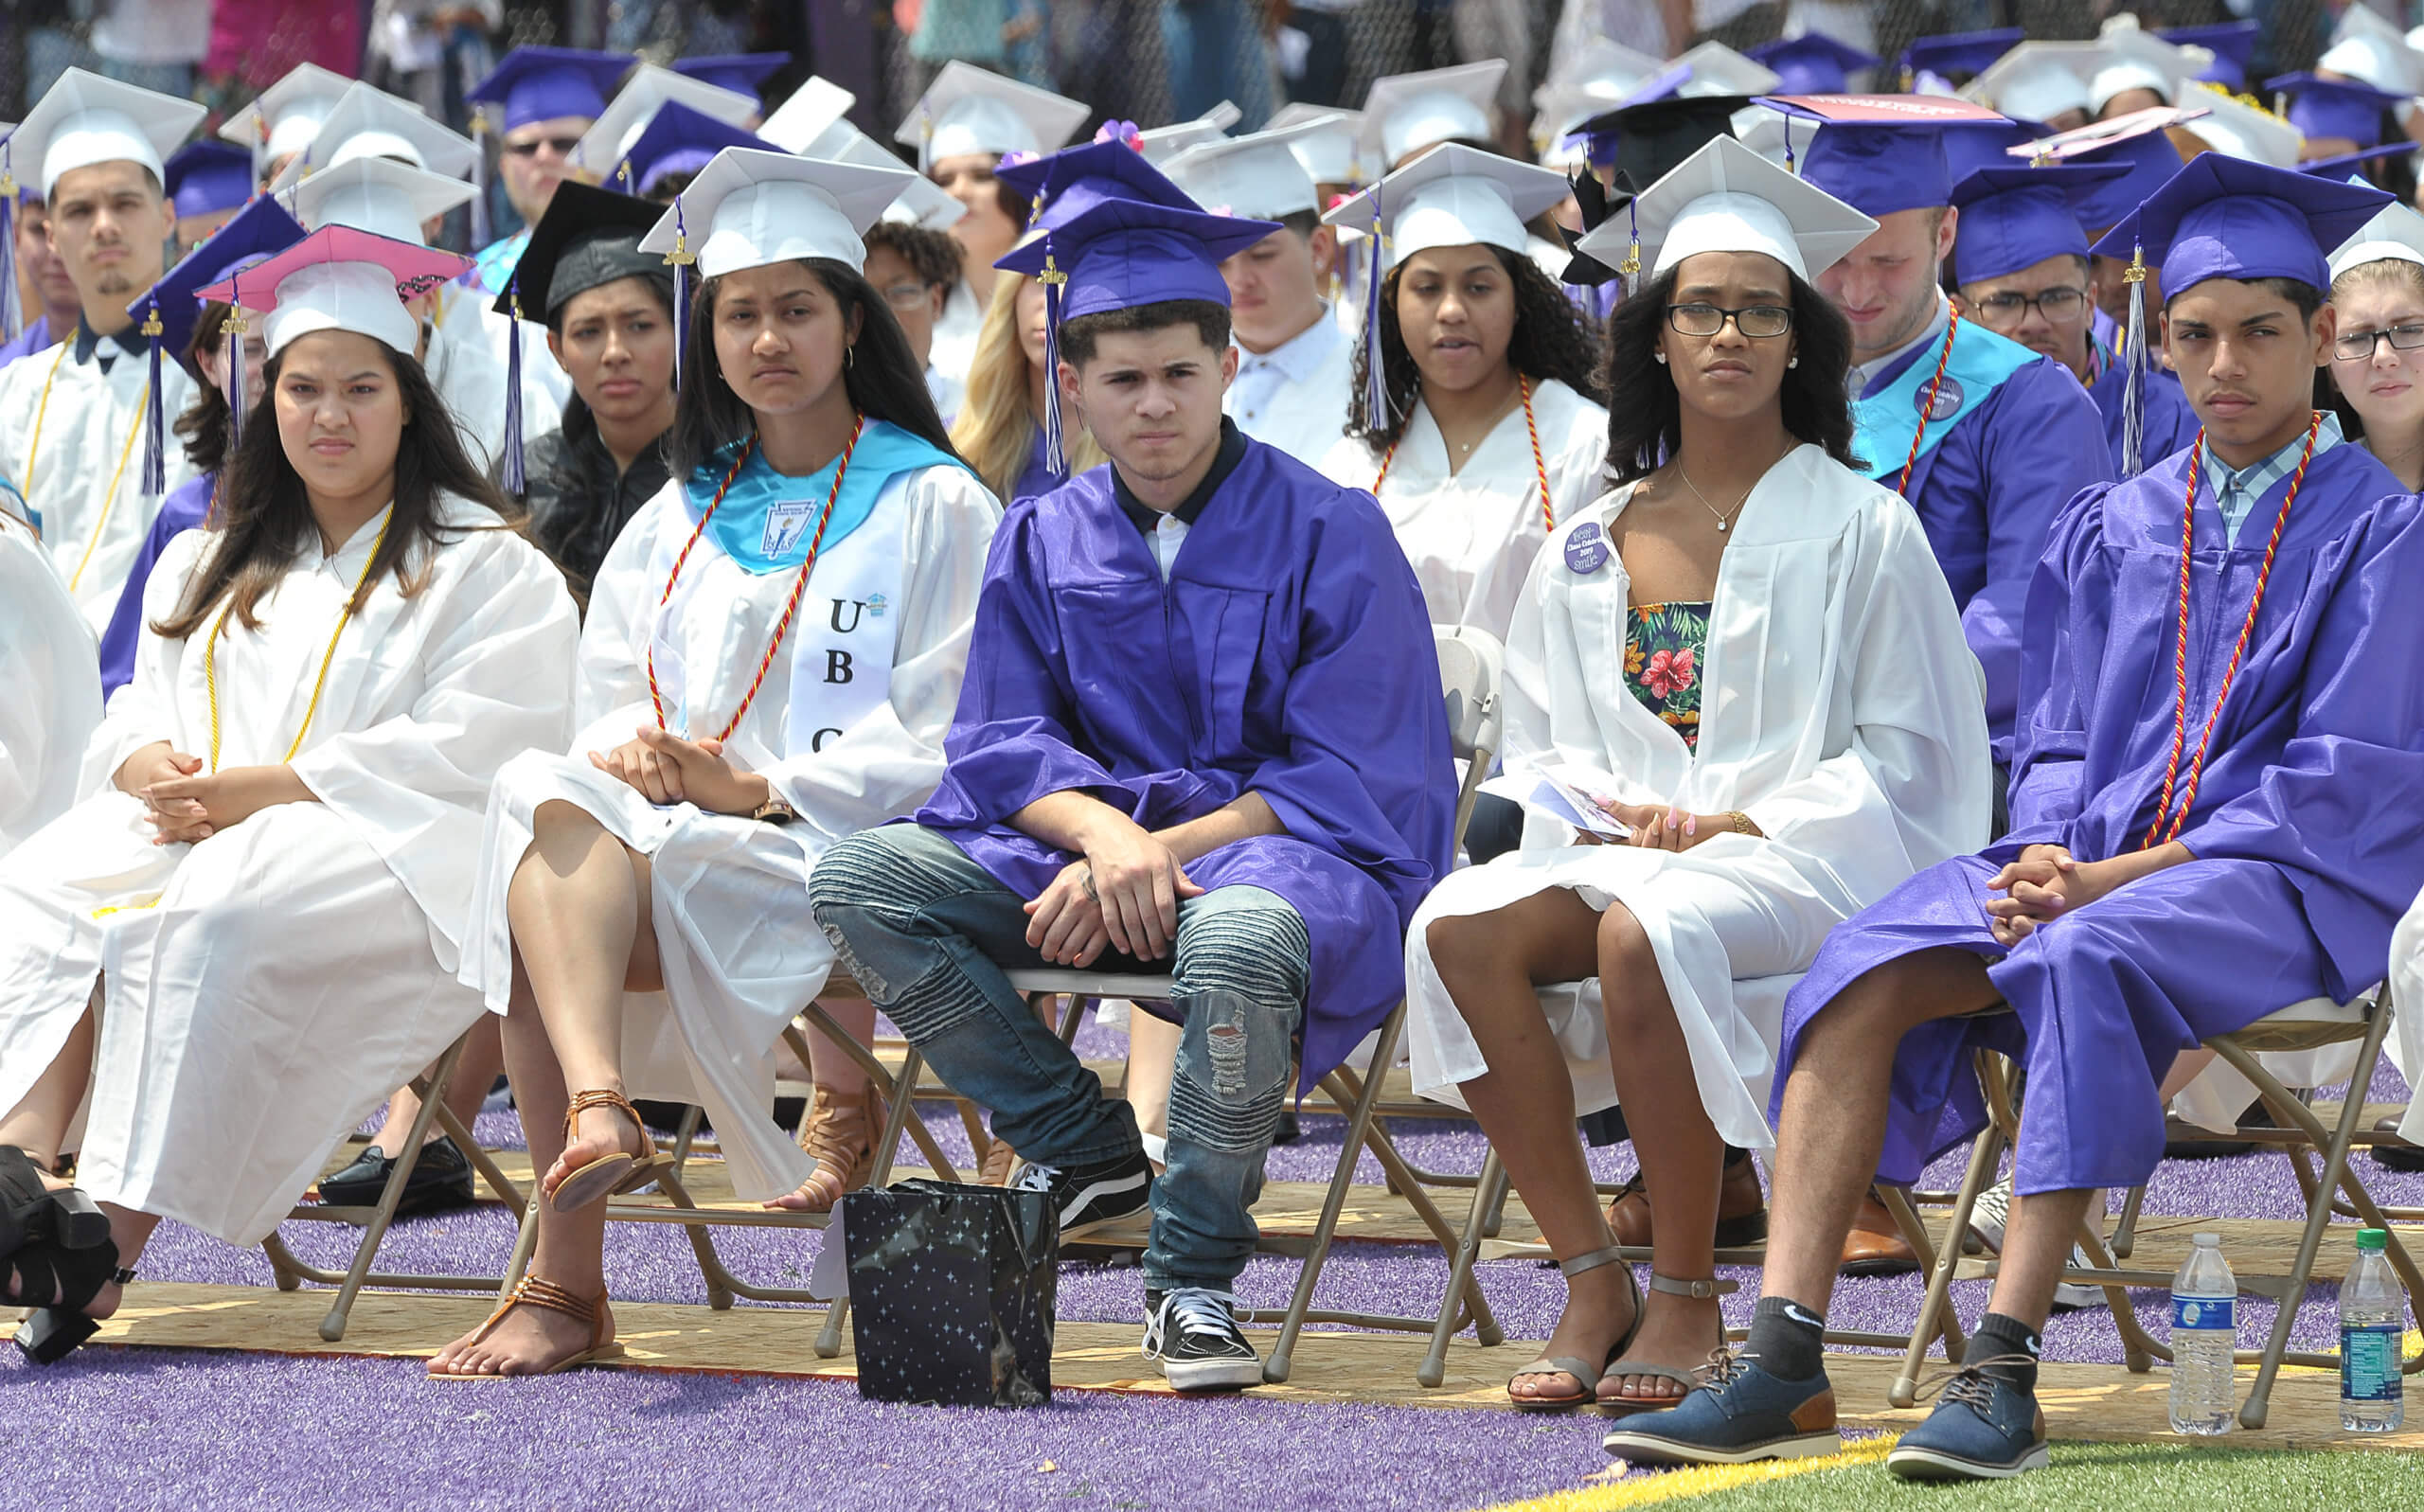 Students sitting at graduation.